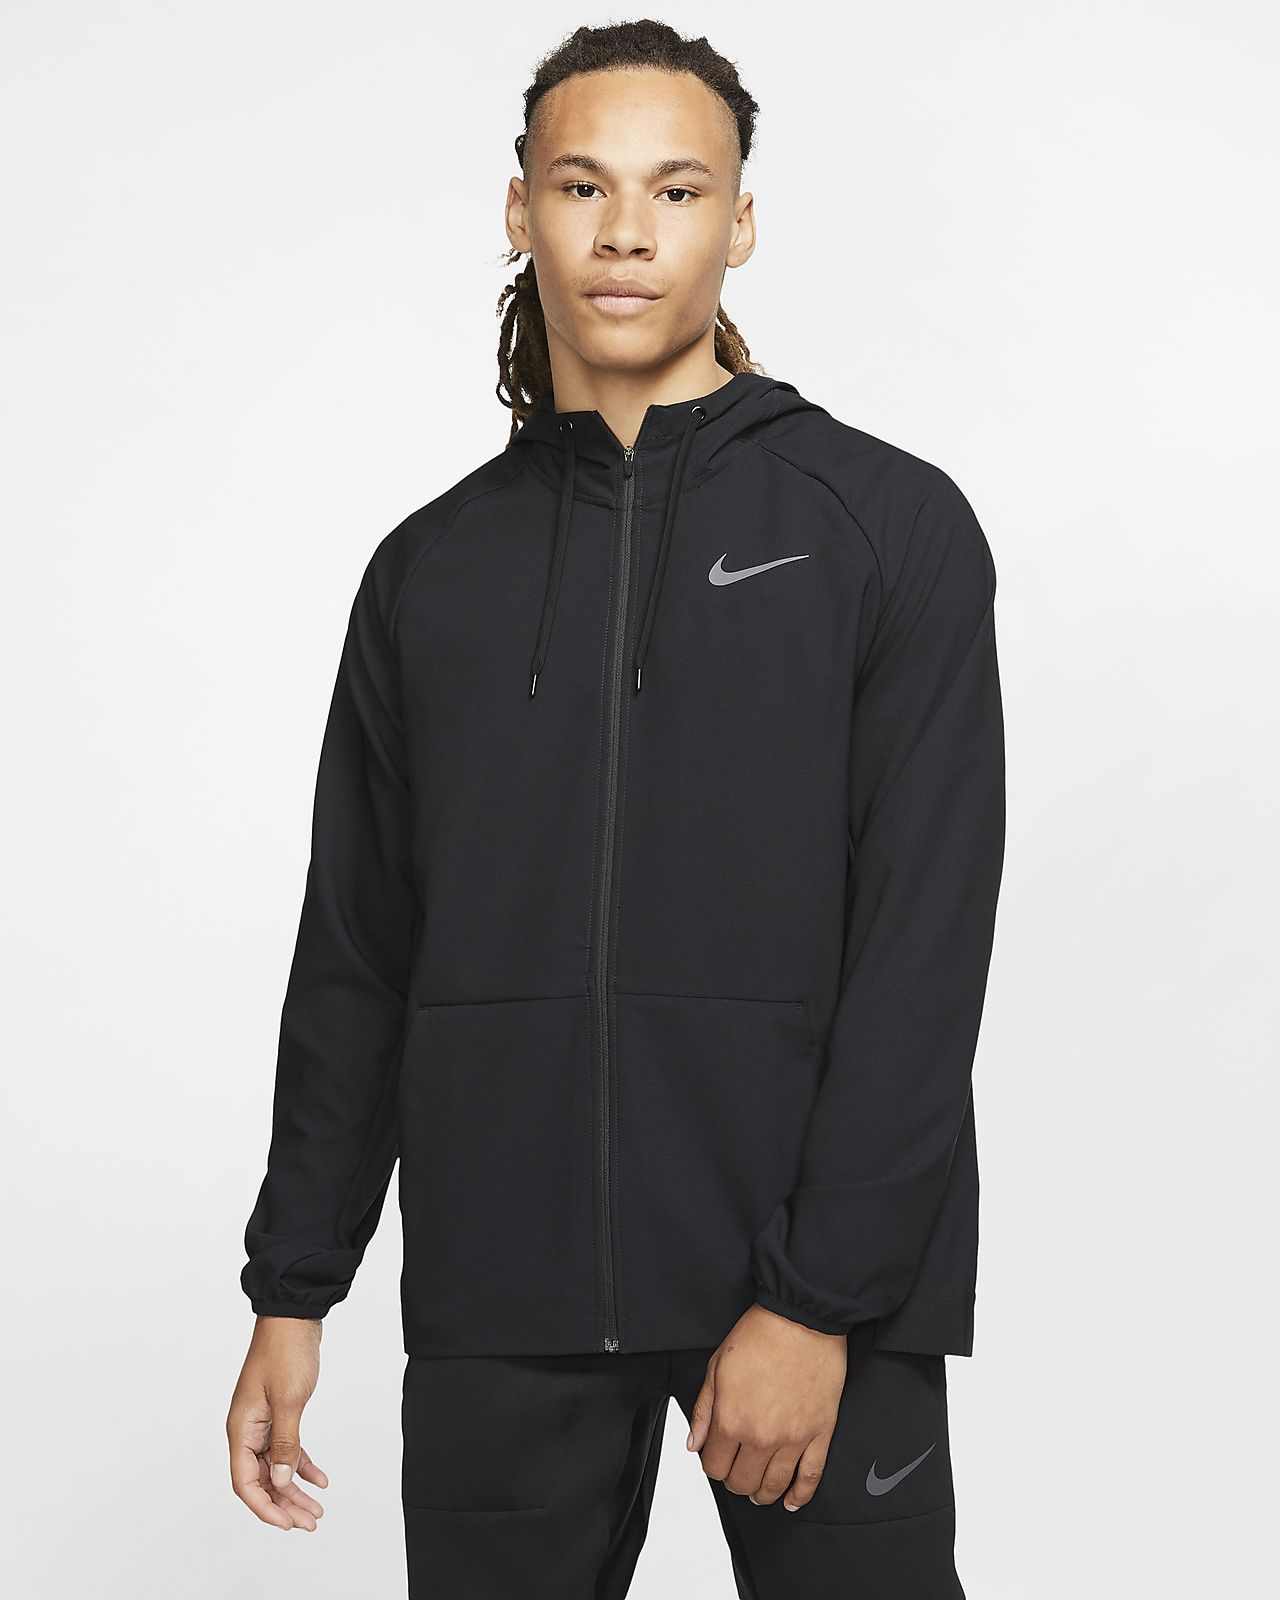 Nike Flex Men's Full-Zip Training Hoodie